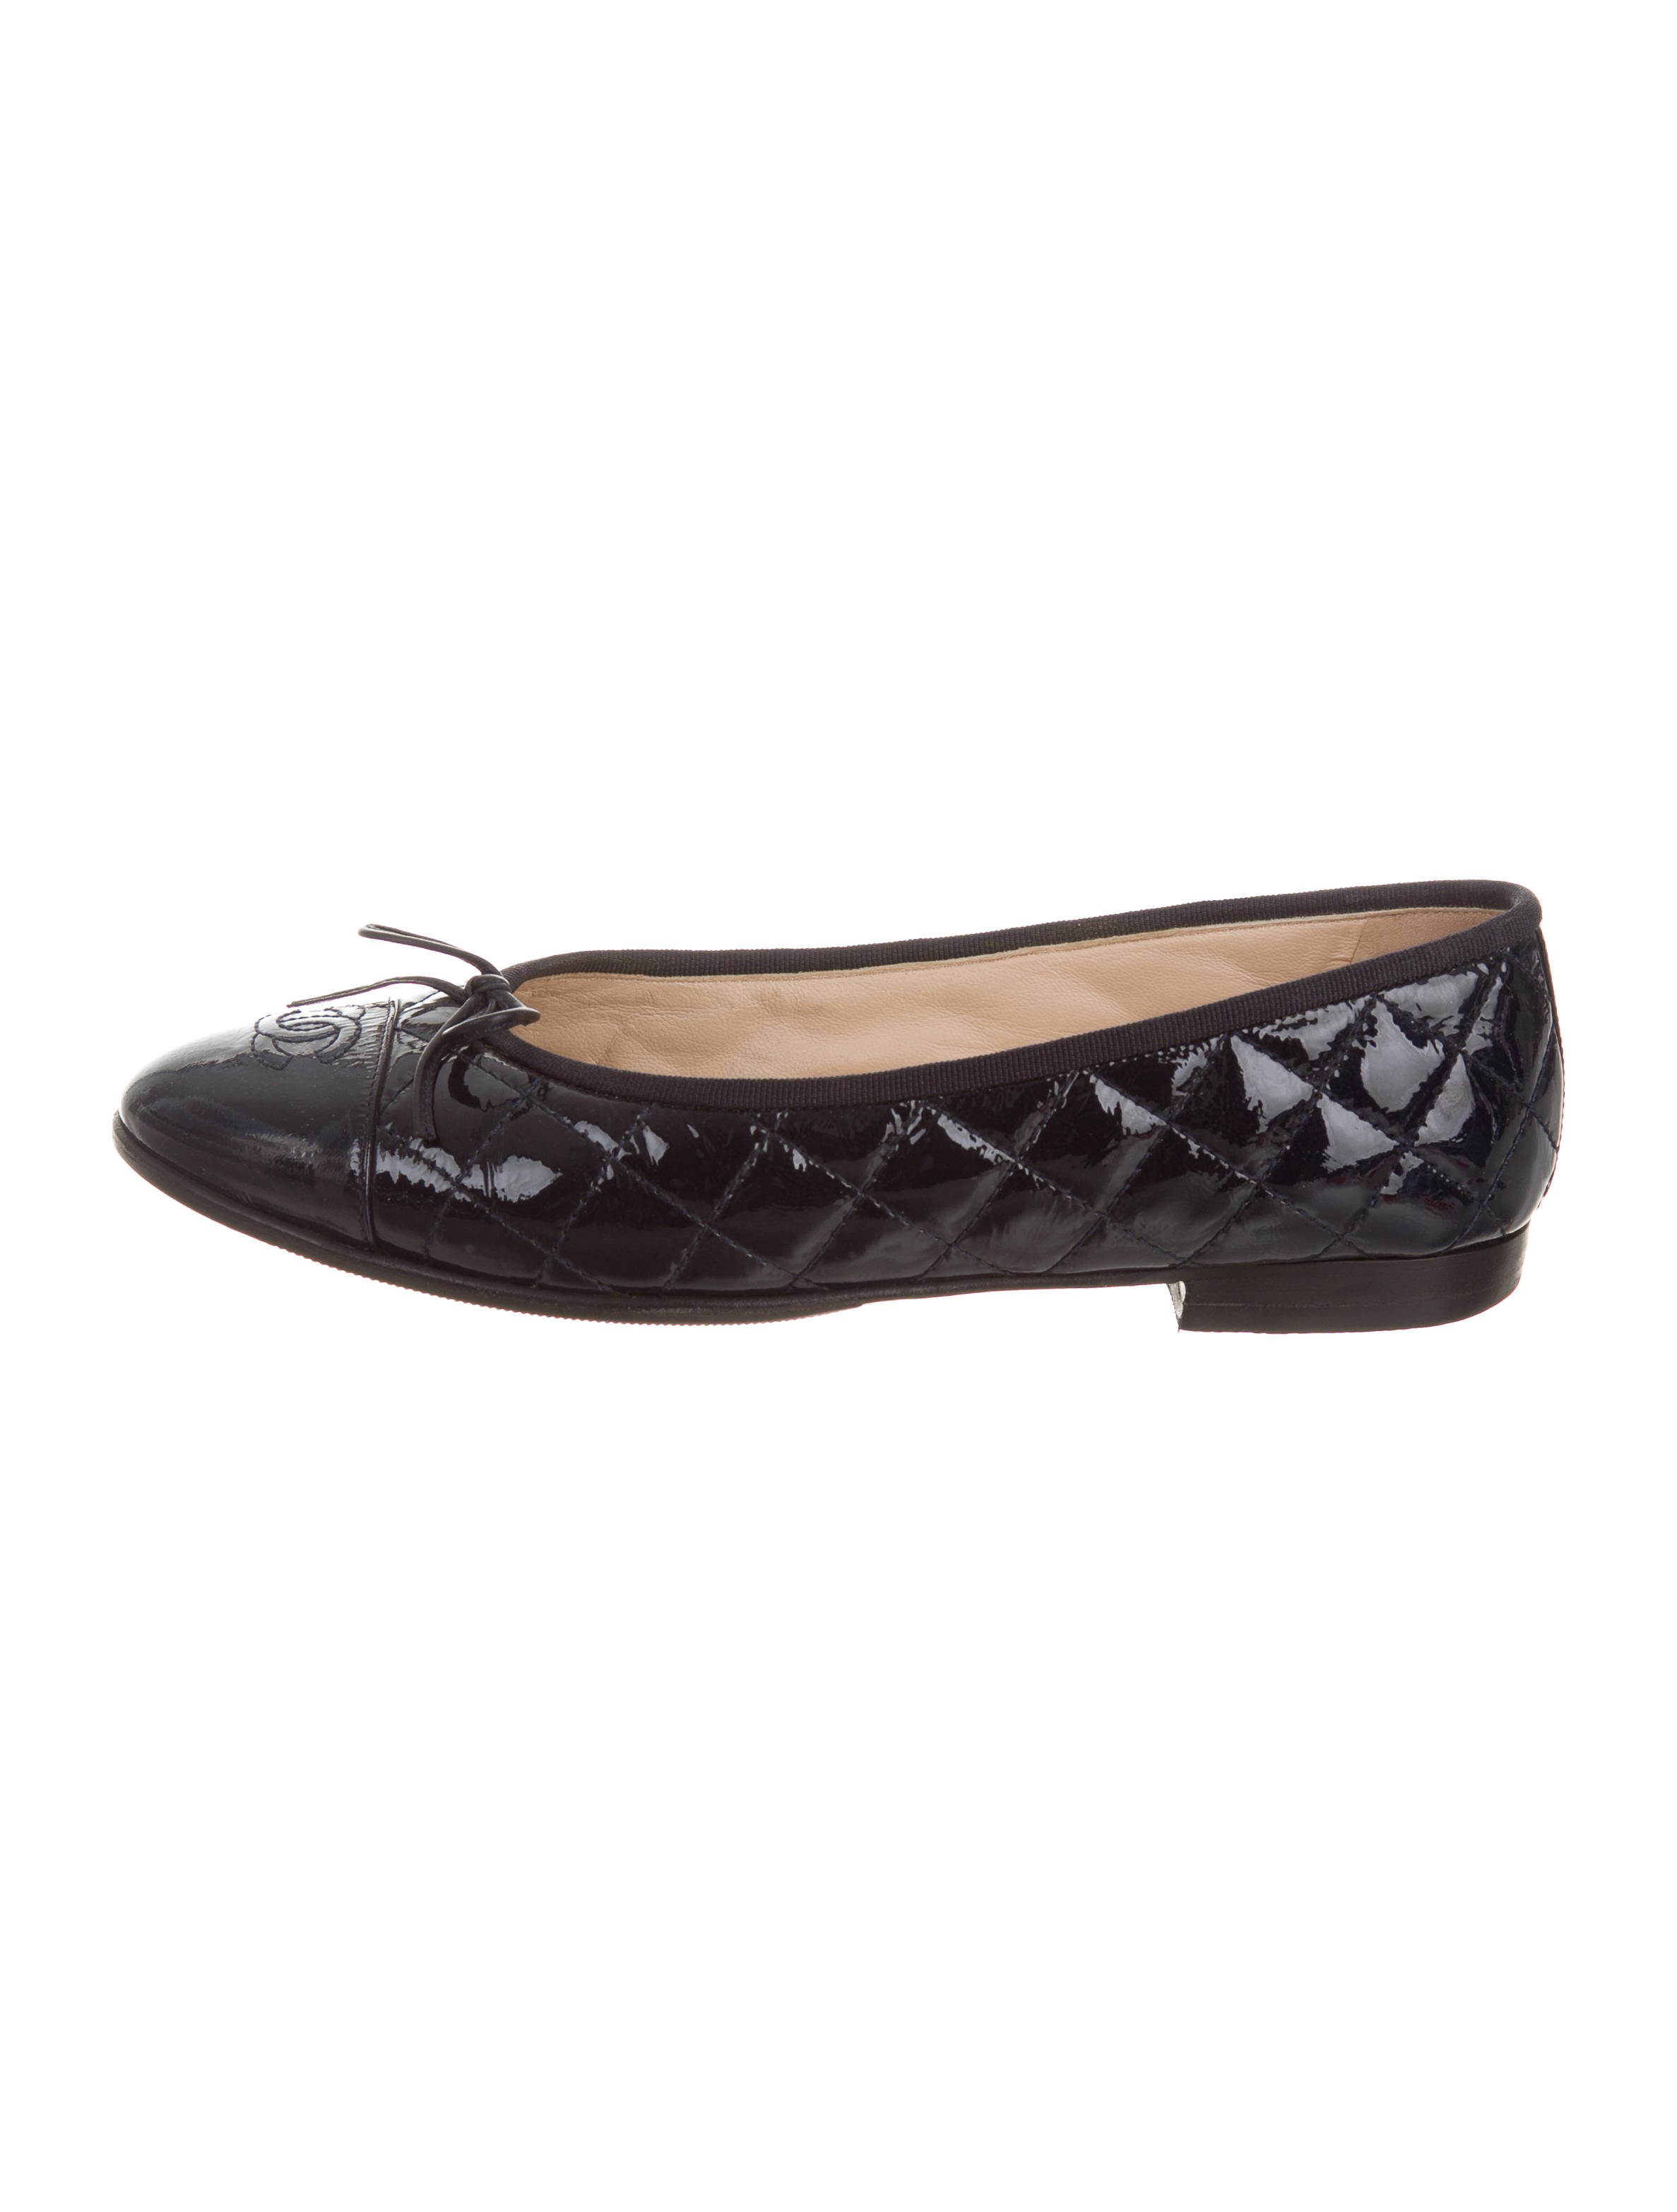 Chanel Cc Quilted Flats Shoes Cha176196 The Realreal